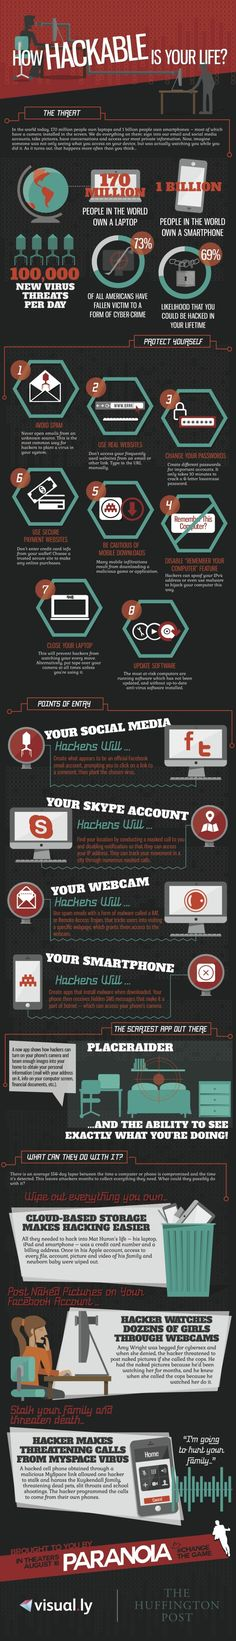 How Hackable is Your Life? you're reading this, there's 69 percent chance you will become a victim of hacking at some point in your lifetime. And if you think protecting yourself is as easy as changing a couple passwords and installing some anti-virus software, you're 100 percent wrong.  Luckily, the paranoia-inducing infographic below will whip you into shape, stat.